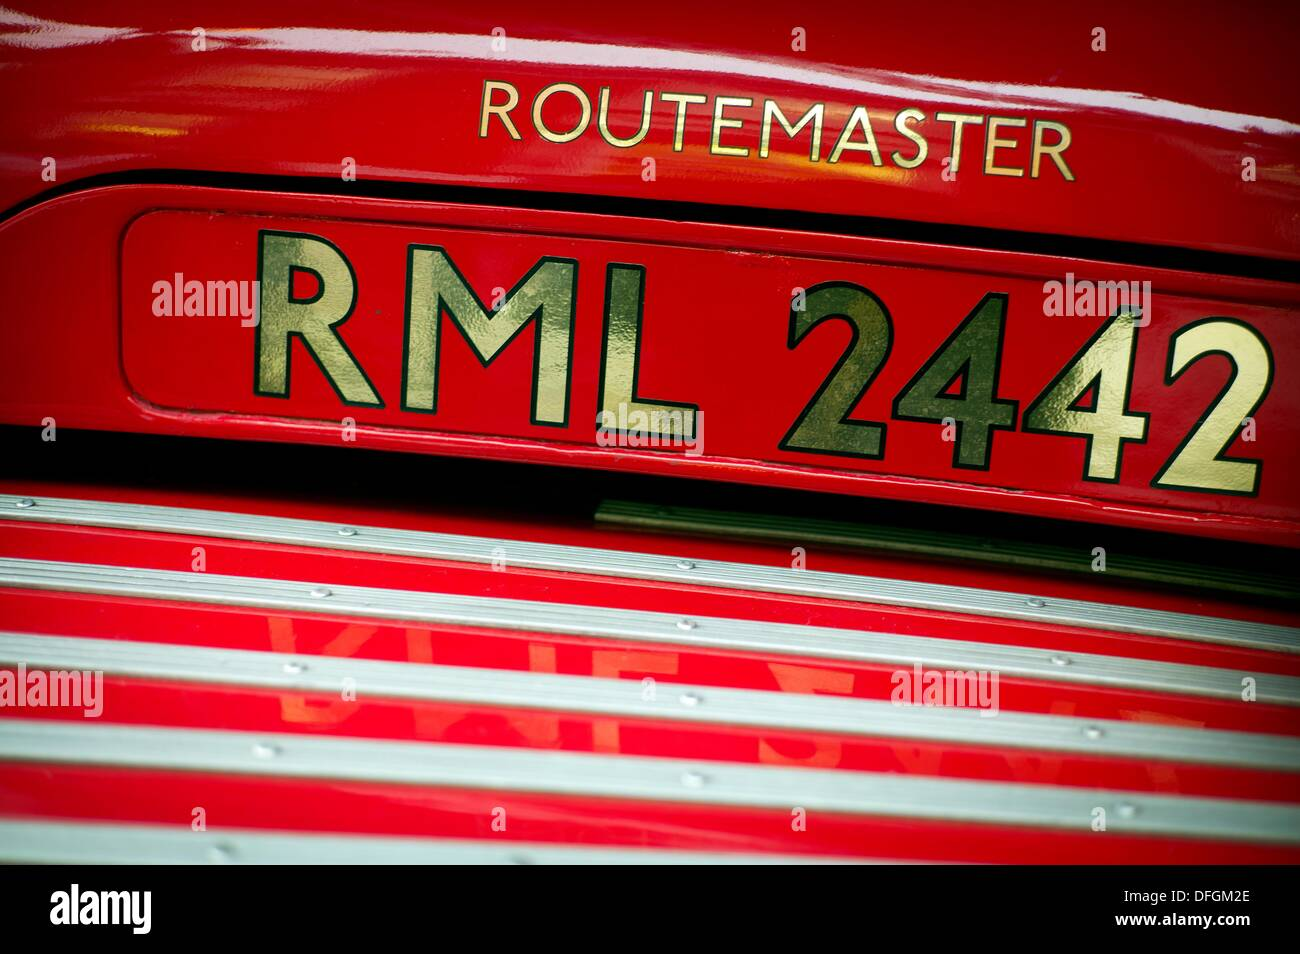 Old Bus, Routemaster, number plate, registration, RML 2442, London ...